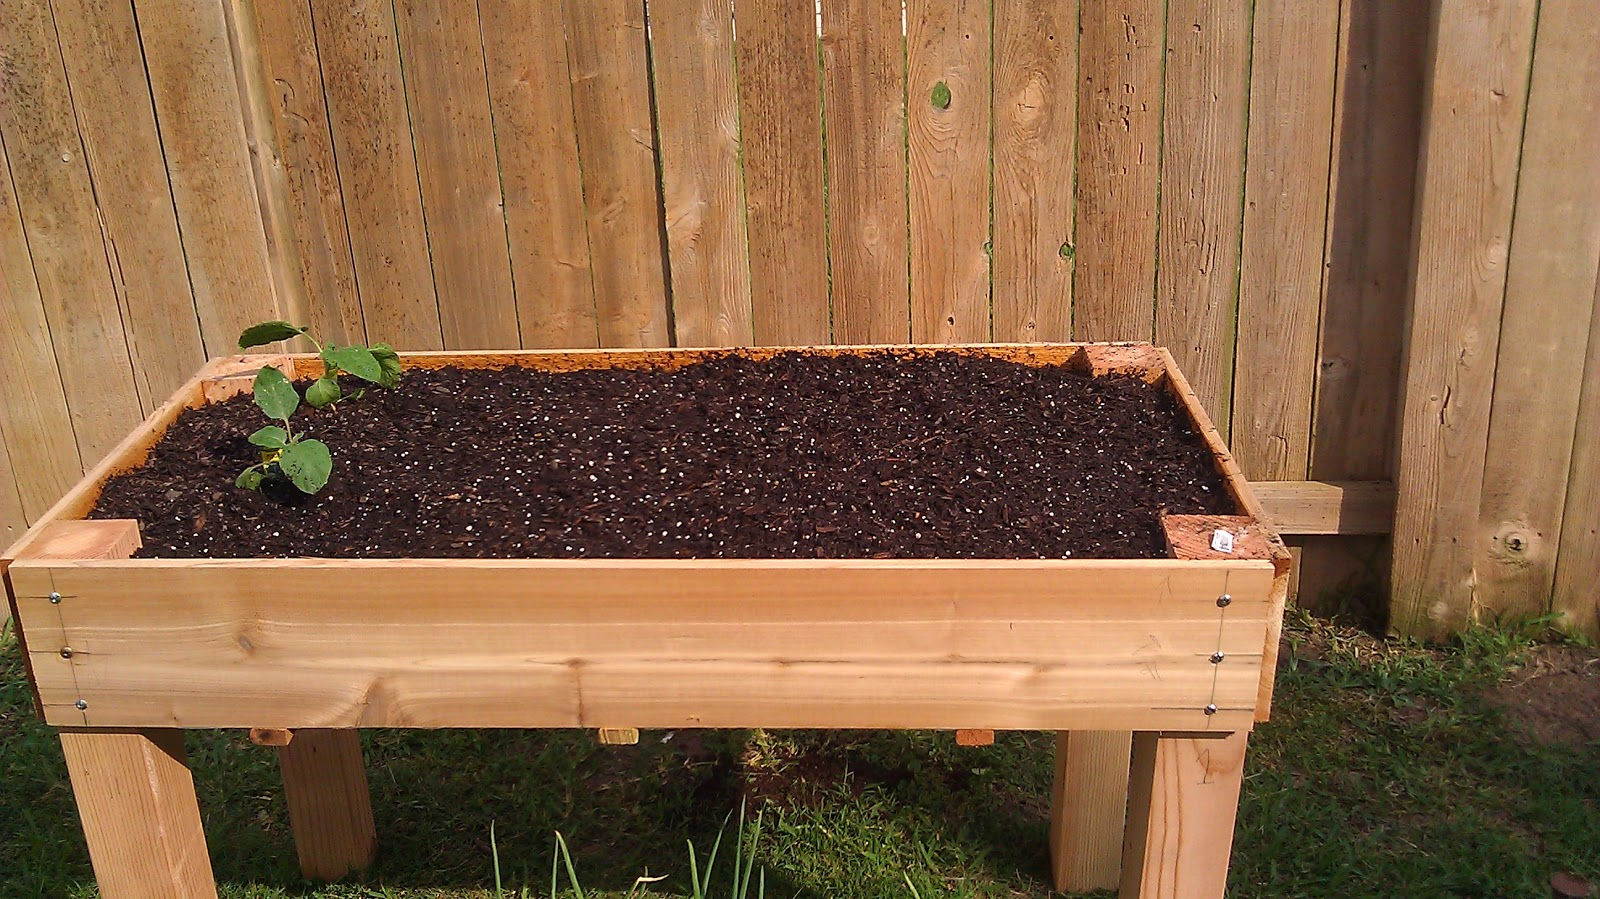 Counter Height Garden Boxes : ... just a girl who creates...: Build your own counter height garden box